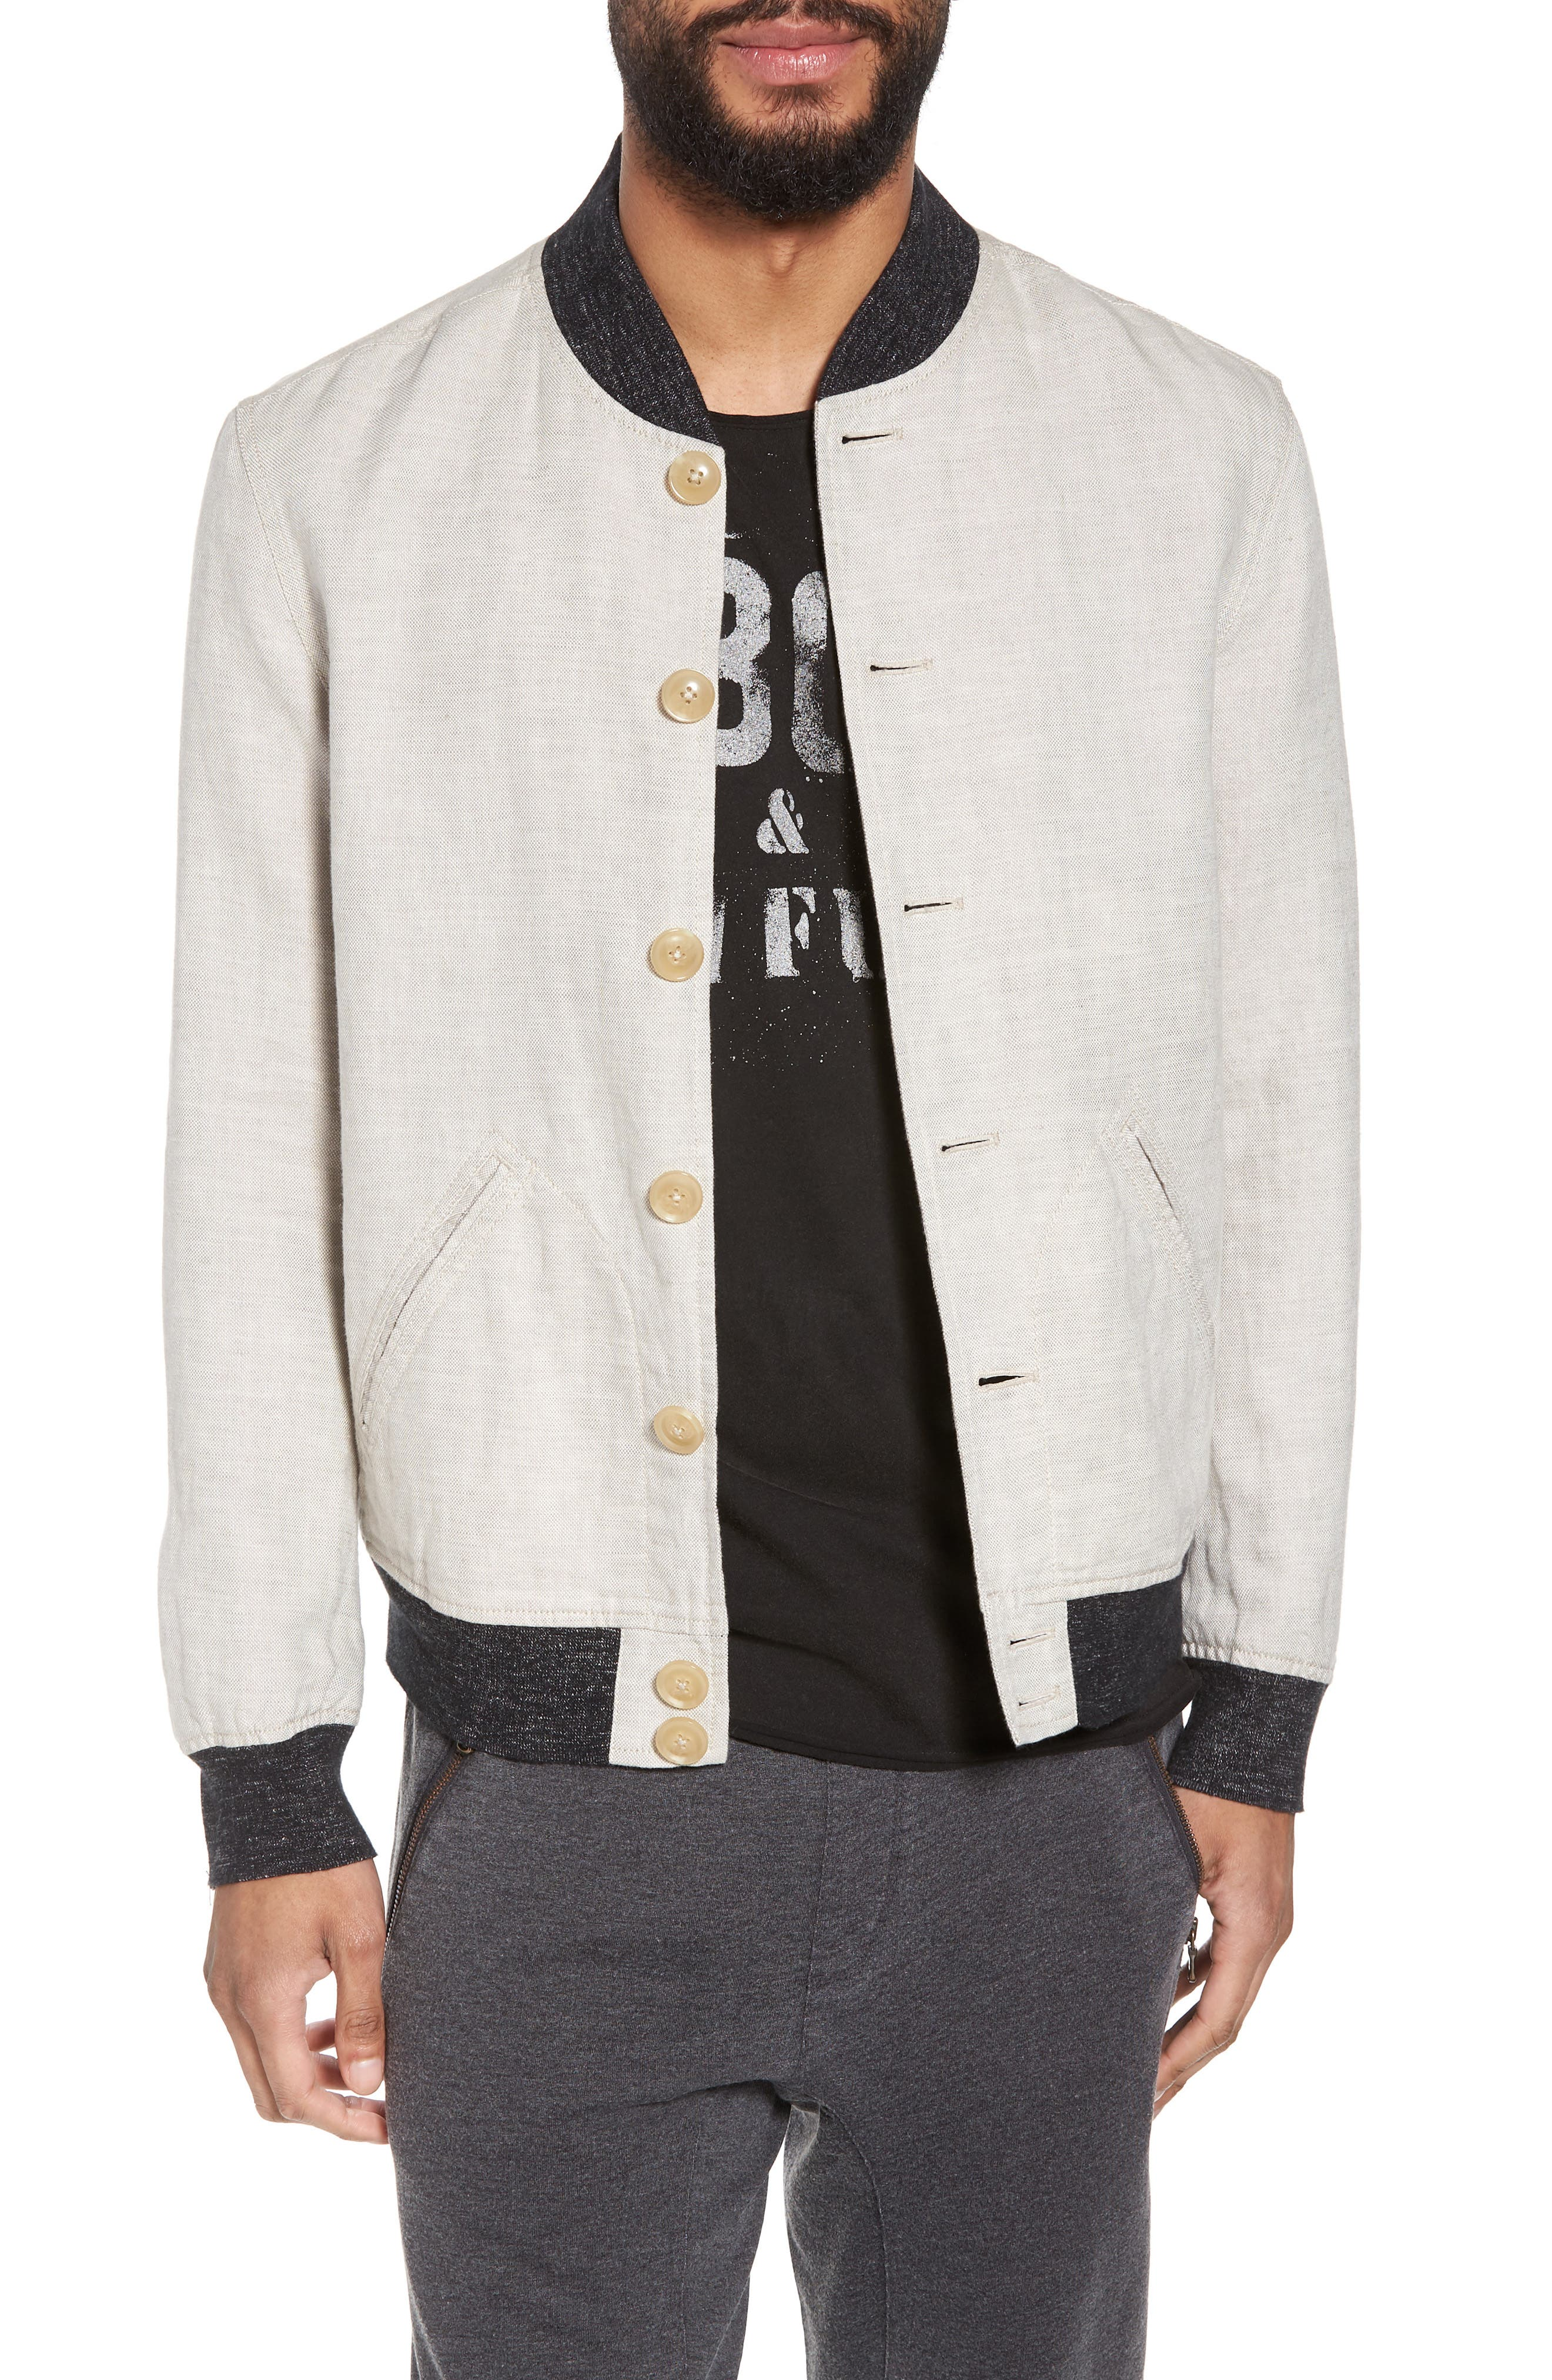 Aged Bomber Jacket,                         Main,                         color, Fossil Grey